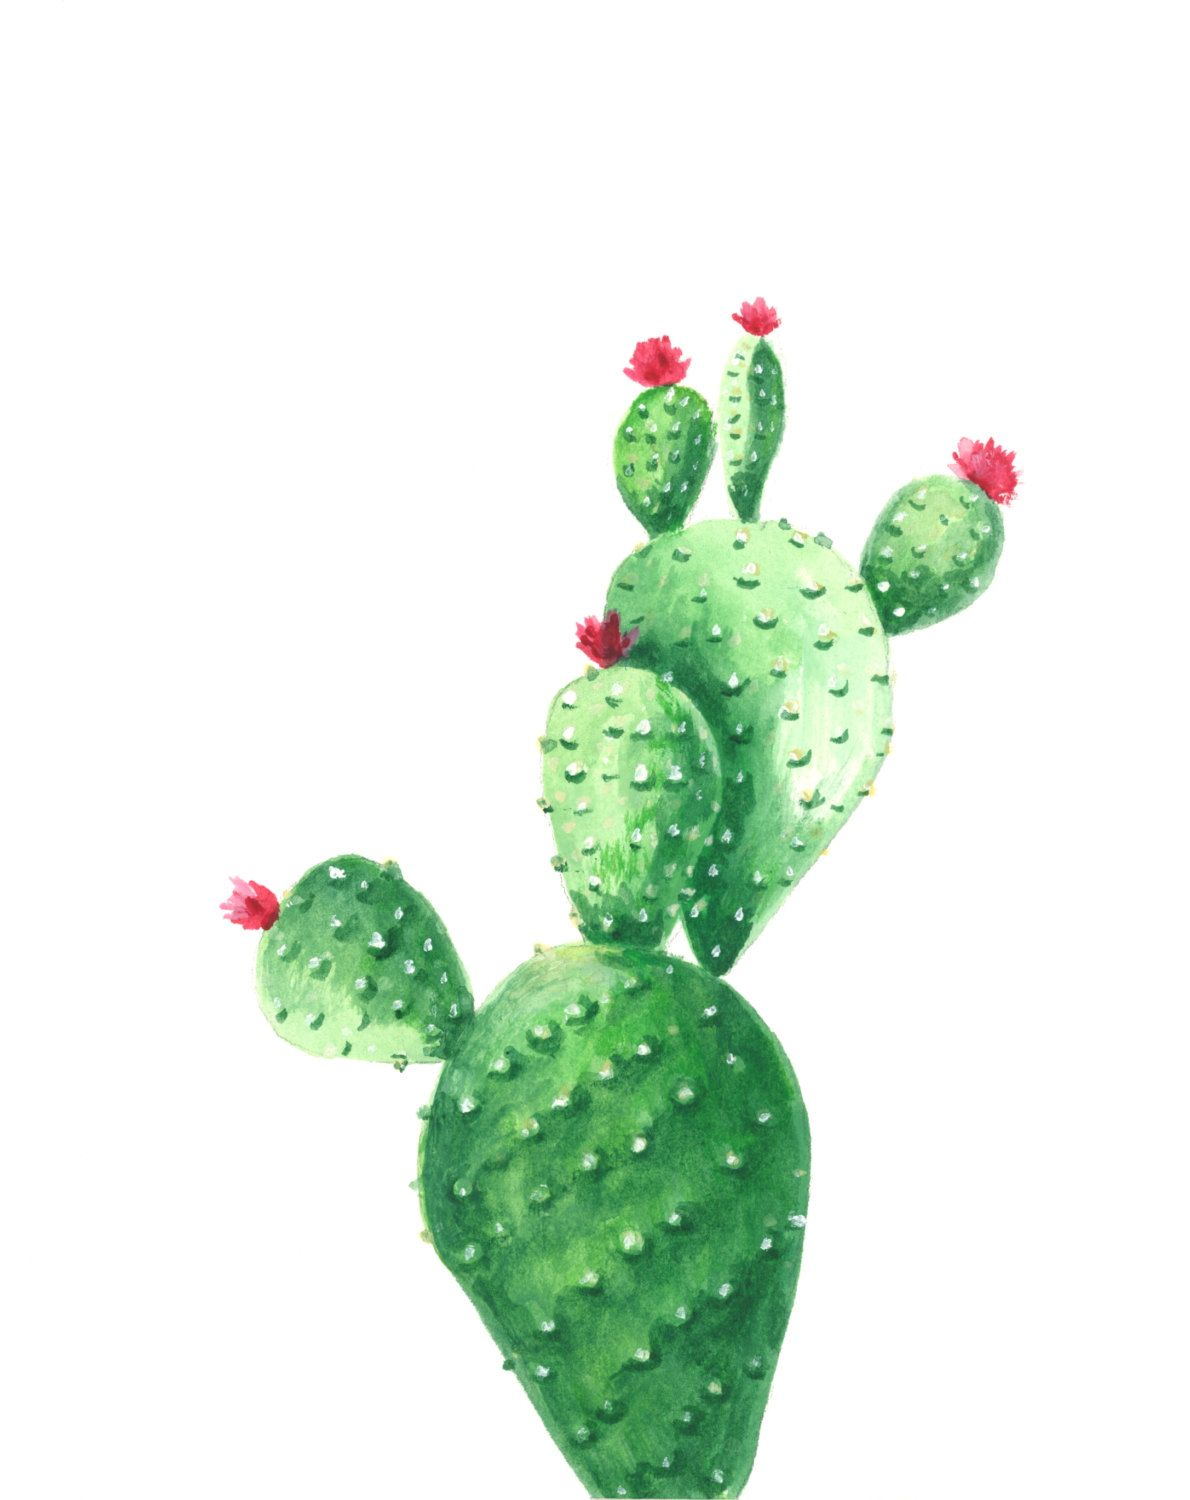 Cactus Watercolor Print Cactus Watercolor Painting By Hgrahamandco